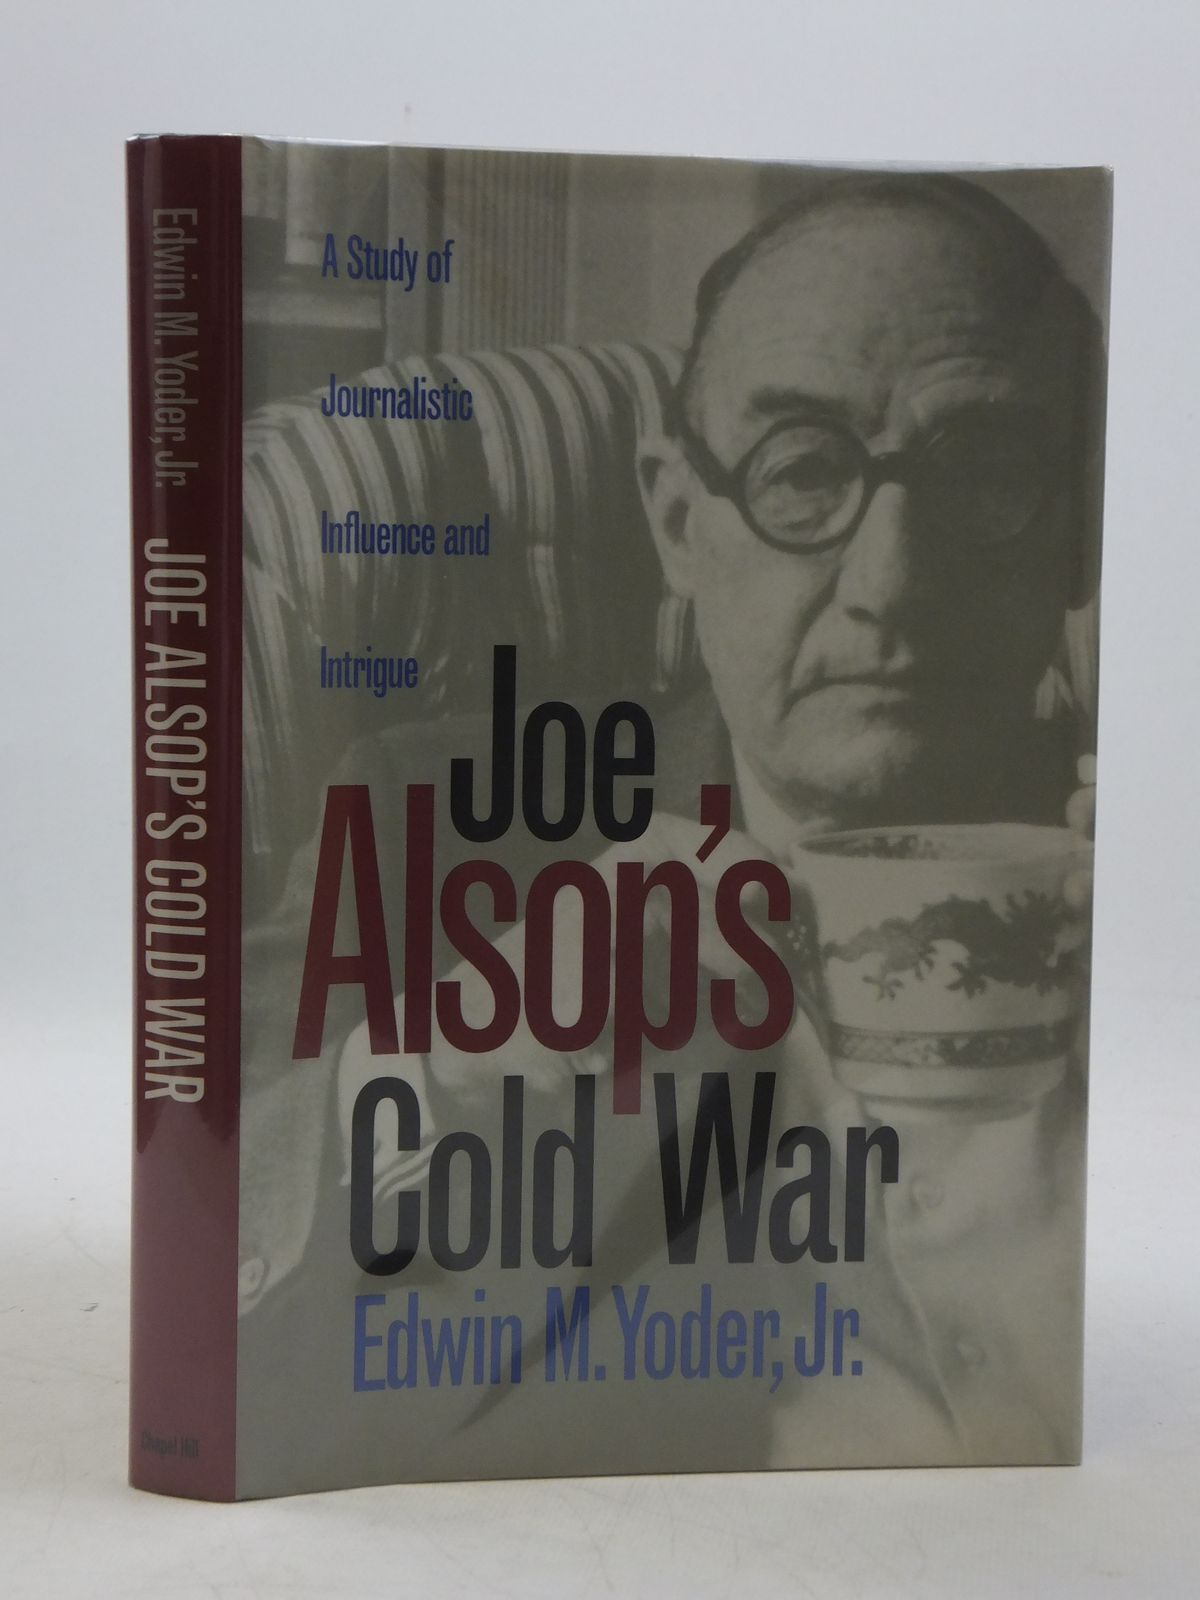 Photo of JOE ALSOP'S COLD WAR written by Yoder, Edwin M. published by University Of North Carolina Press (STOCK CODE: 1604701)  for sale by Stella & Rose's Books